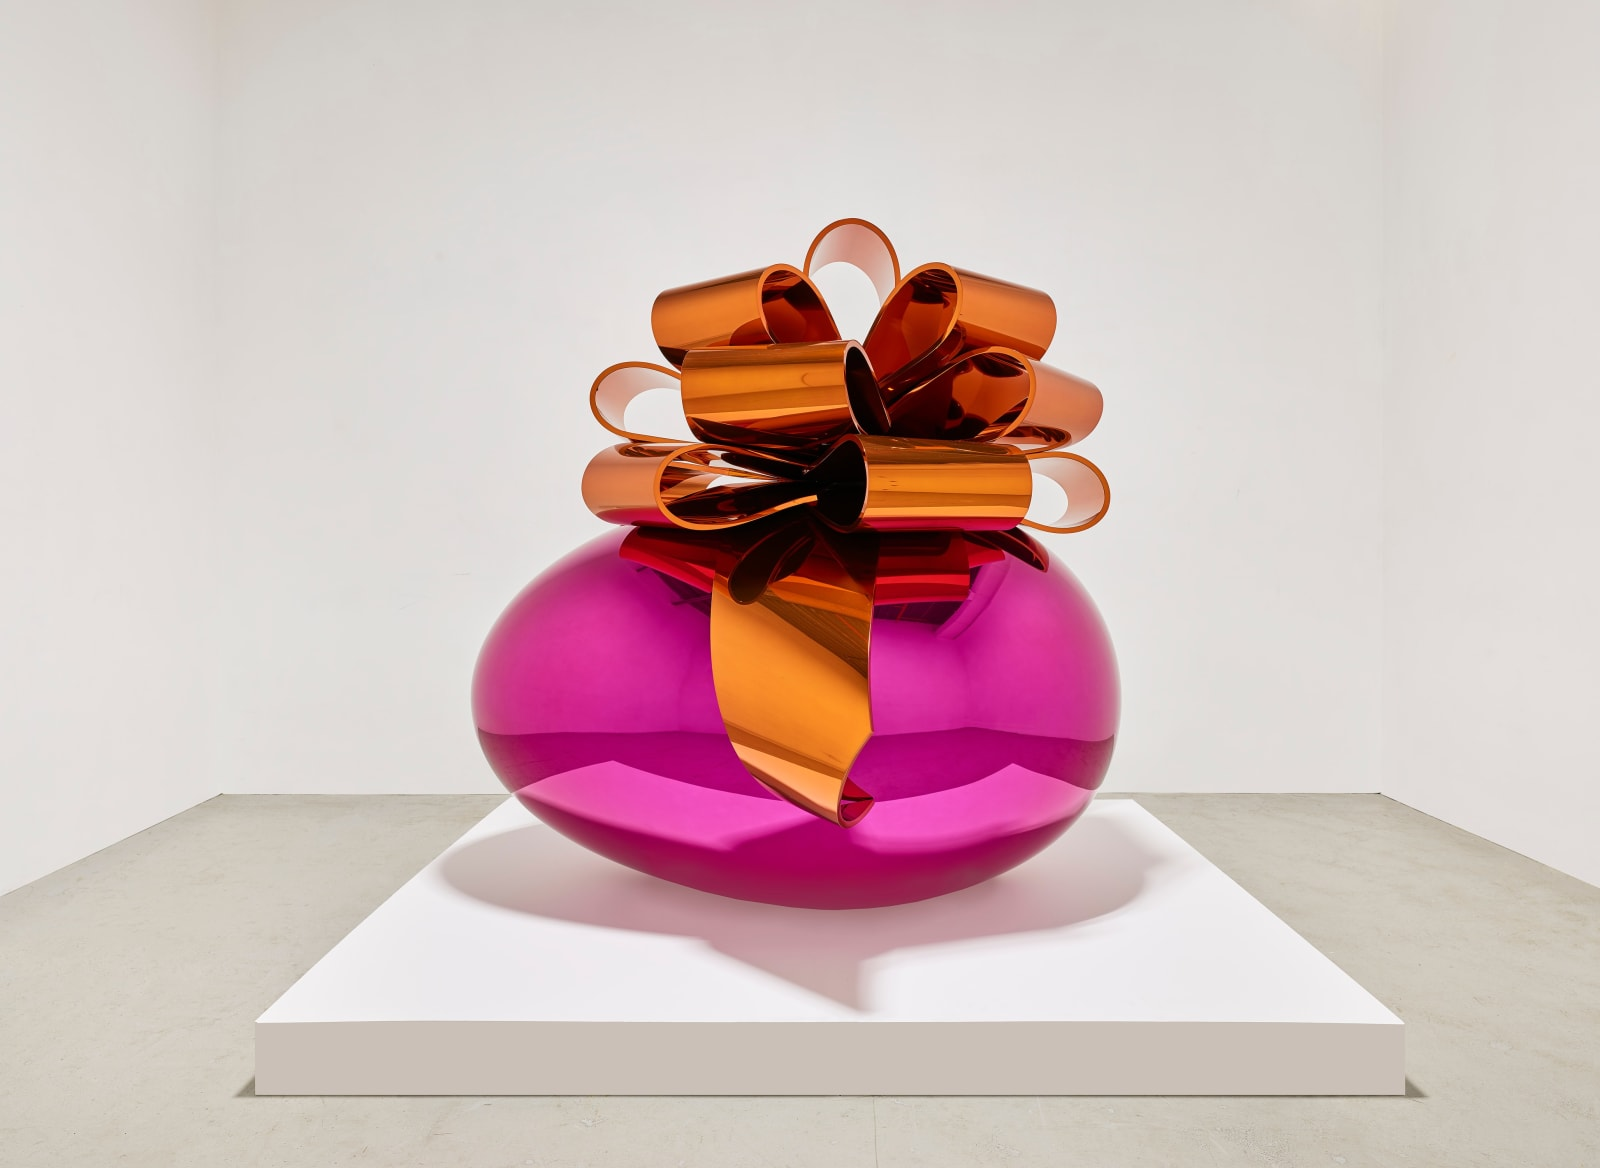 #8 Jeff Koons   Smooth Egg with Bow (Magenta/Orange)  (1994–2009)  Mirror-polished stainless steel with transparent color coating  Exhibited at Edward Tyler Nahem Fine Art's booth (Art Basel in Miami Beach)